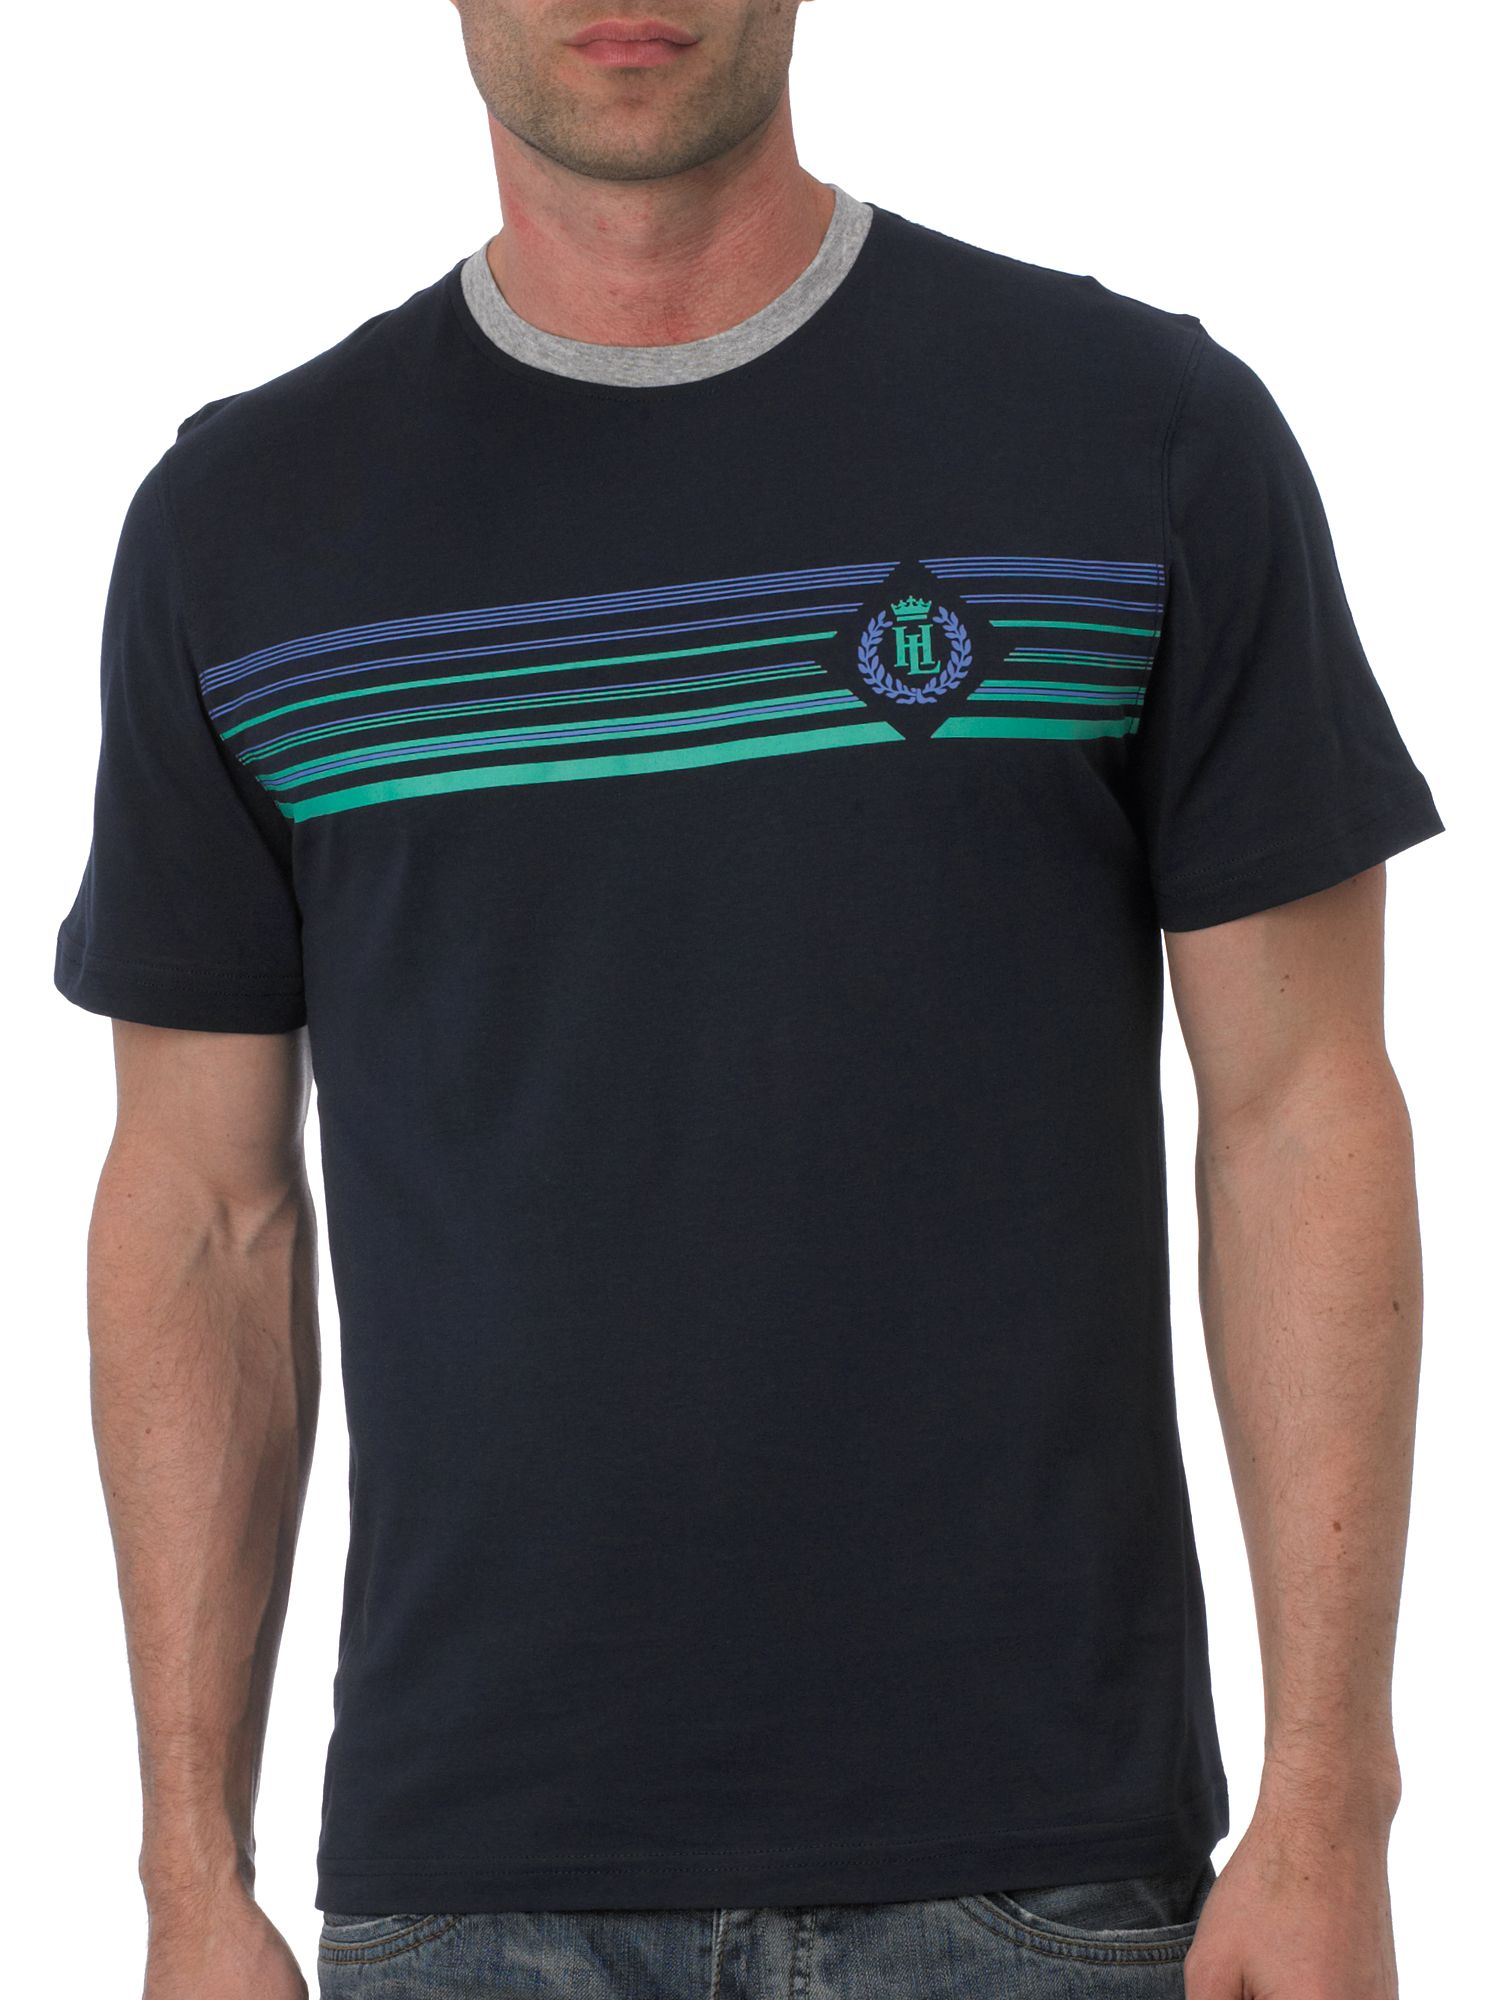 Henri Lloyd Short sleeve stripe logo t-shirt Navy product image